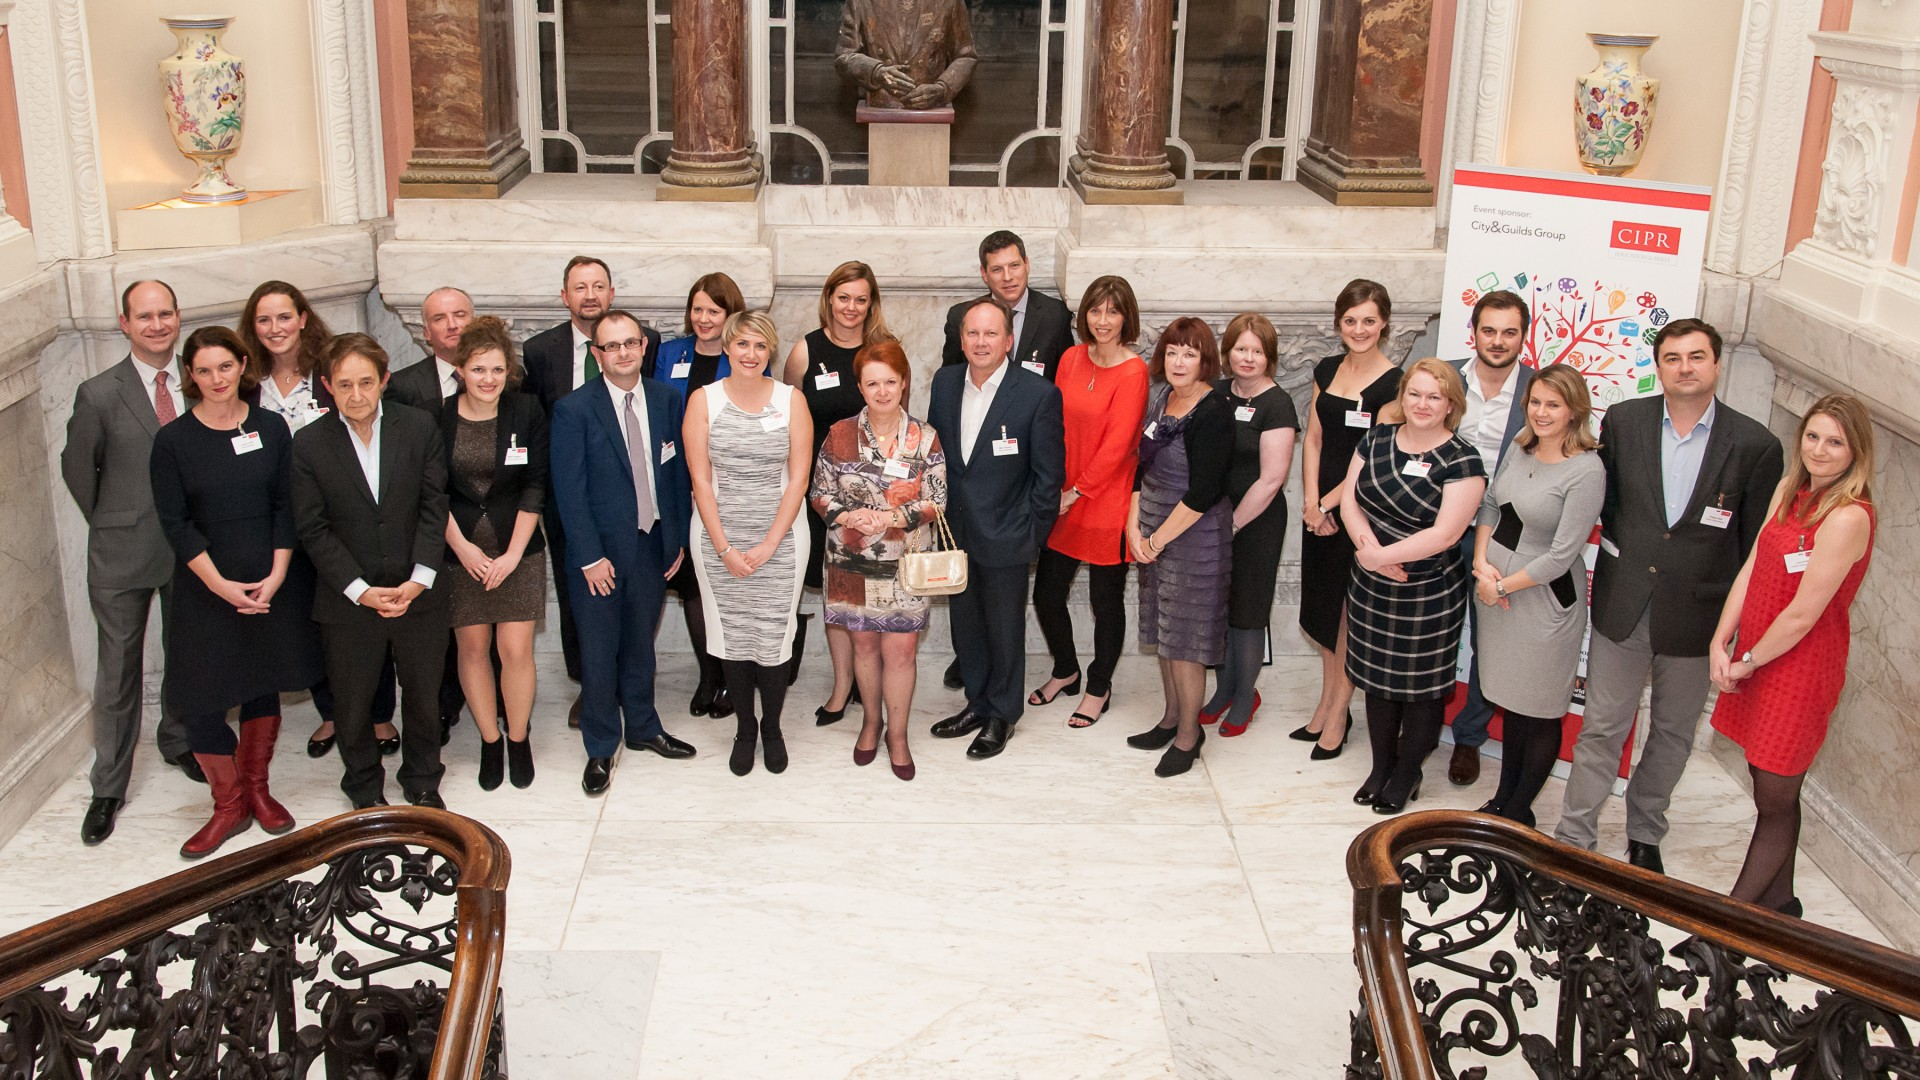 Winners Of 2015 Cipr Education Journalism Awards Announced